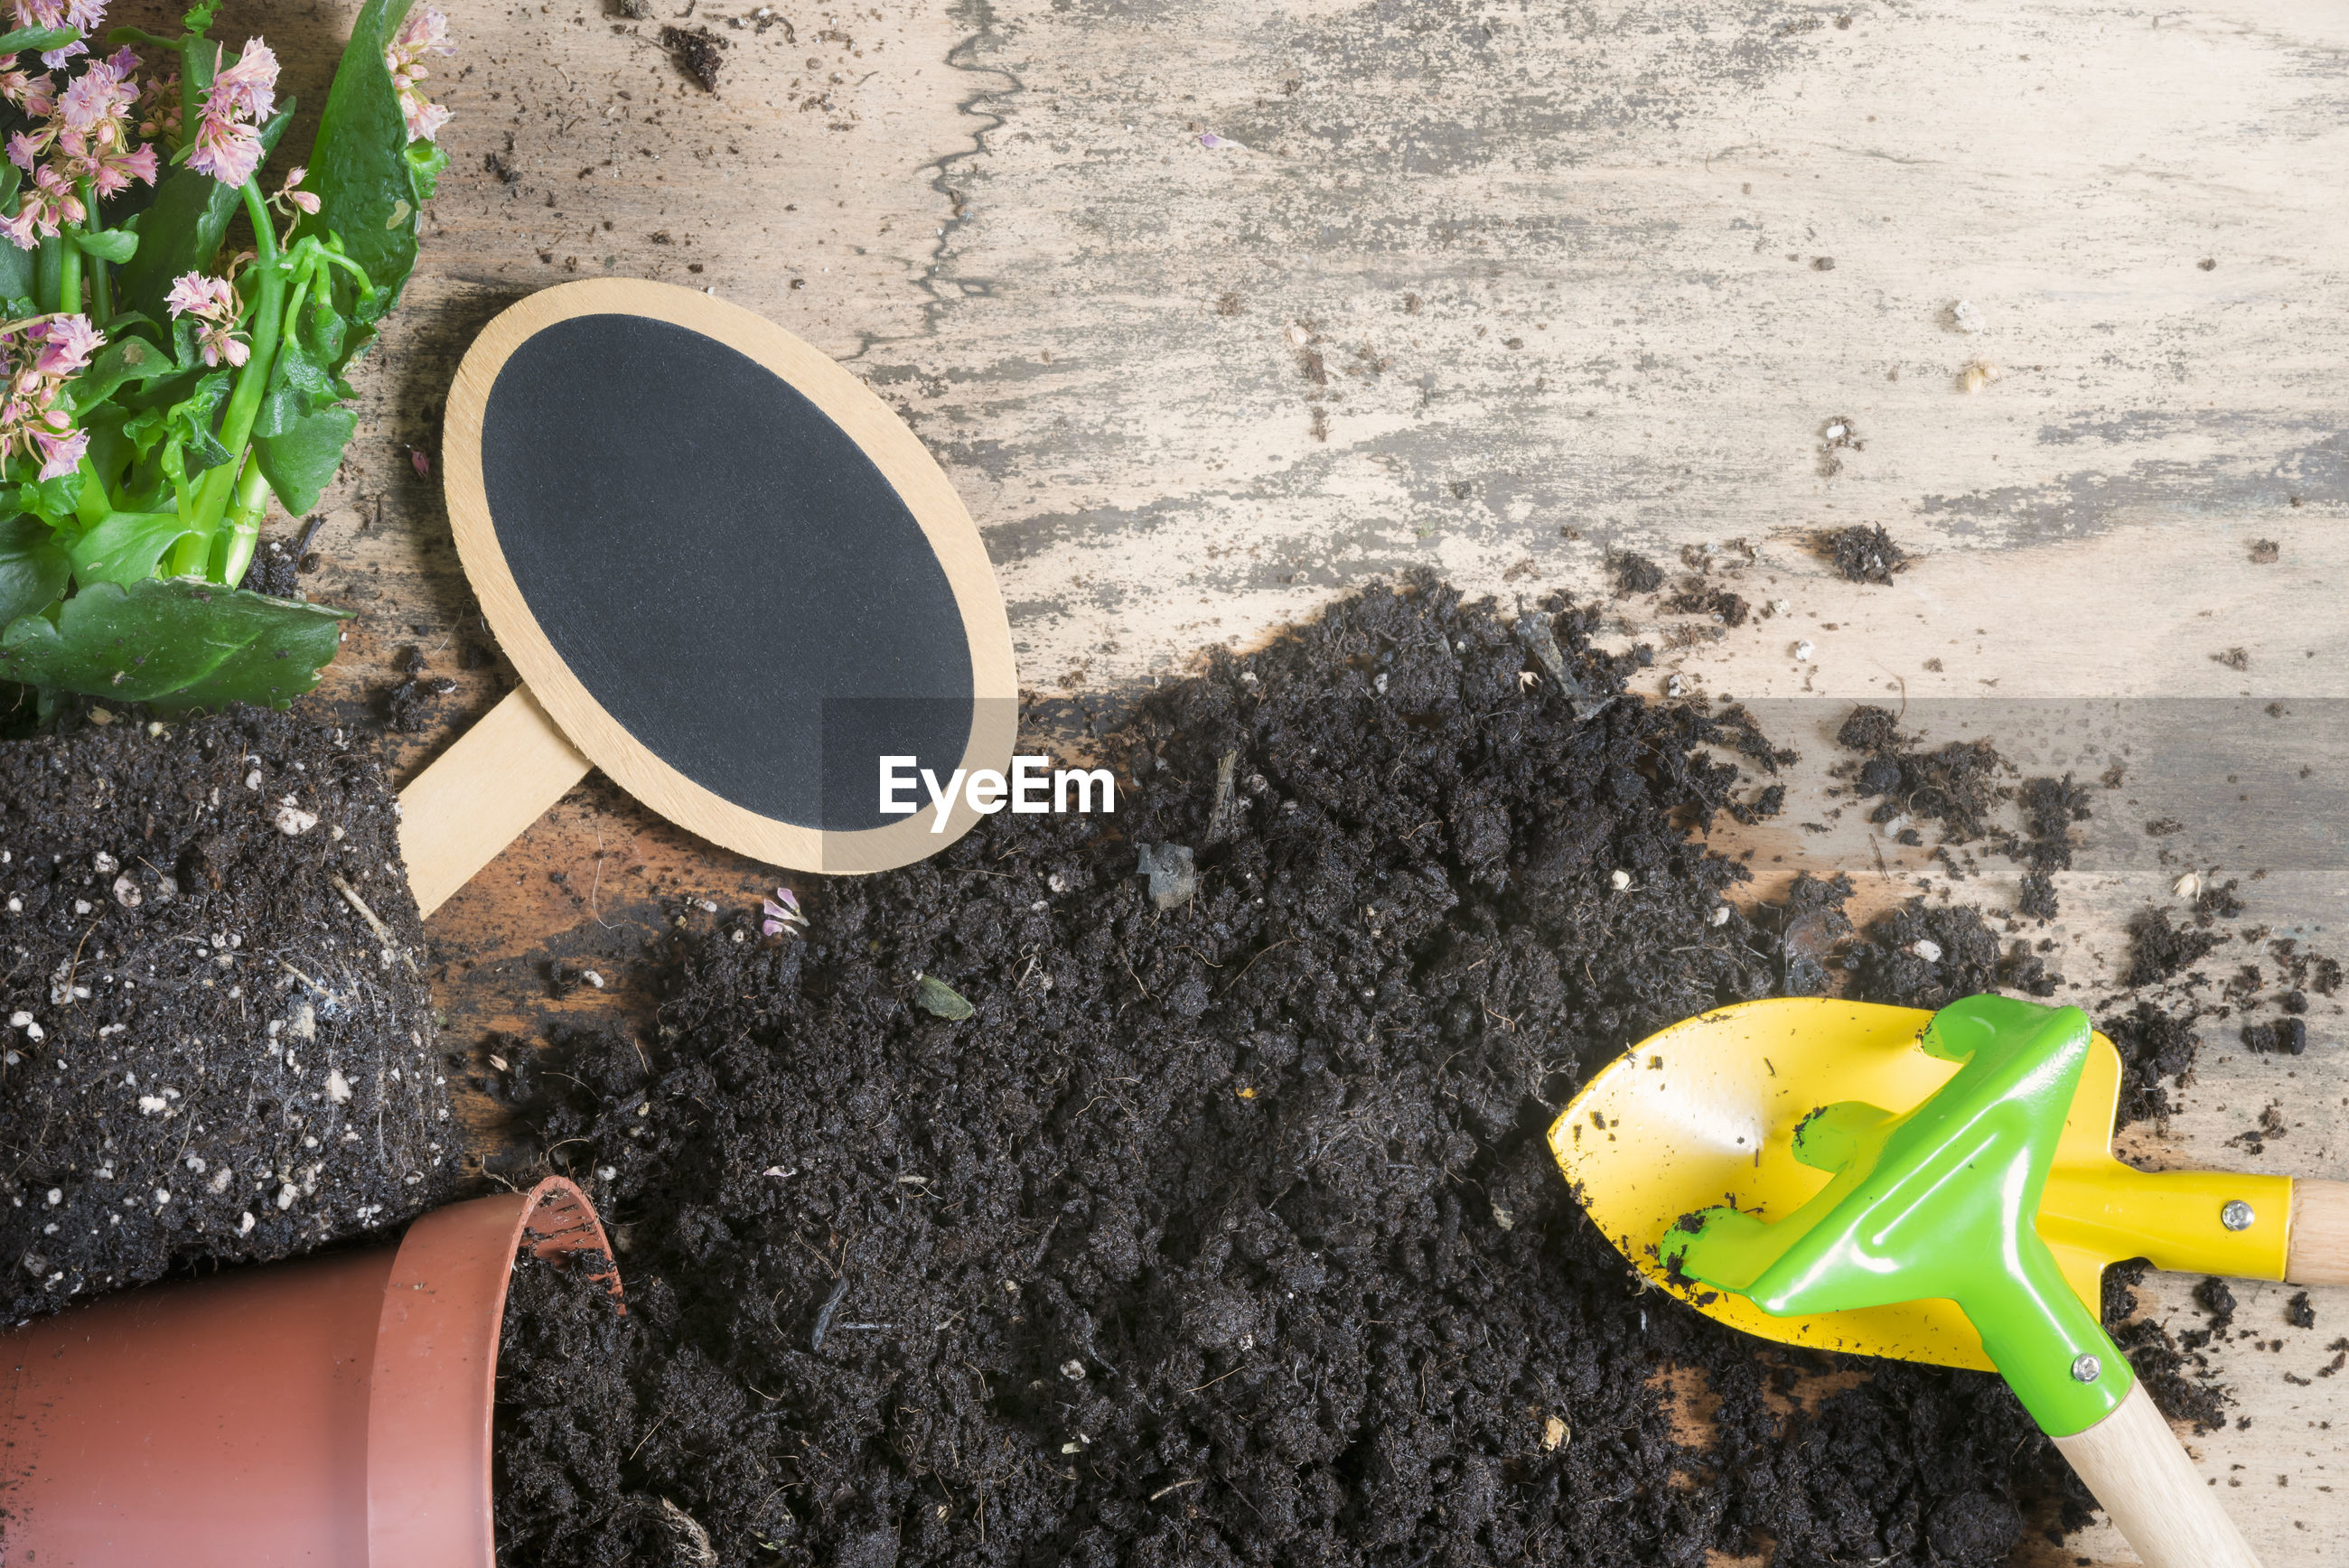 High angle view of soil with pot and gardening equipment